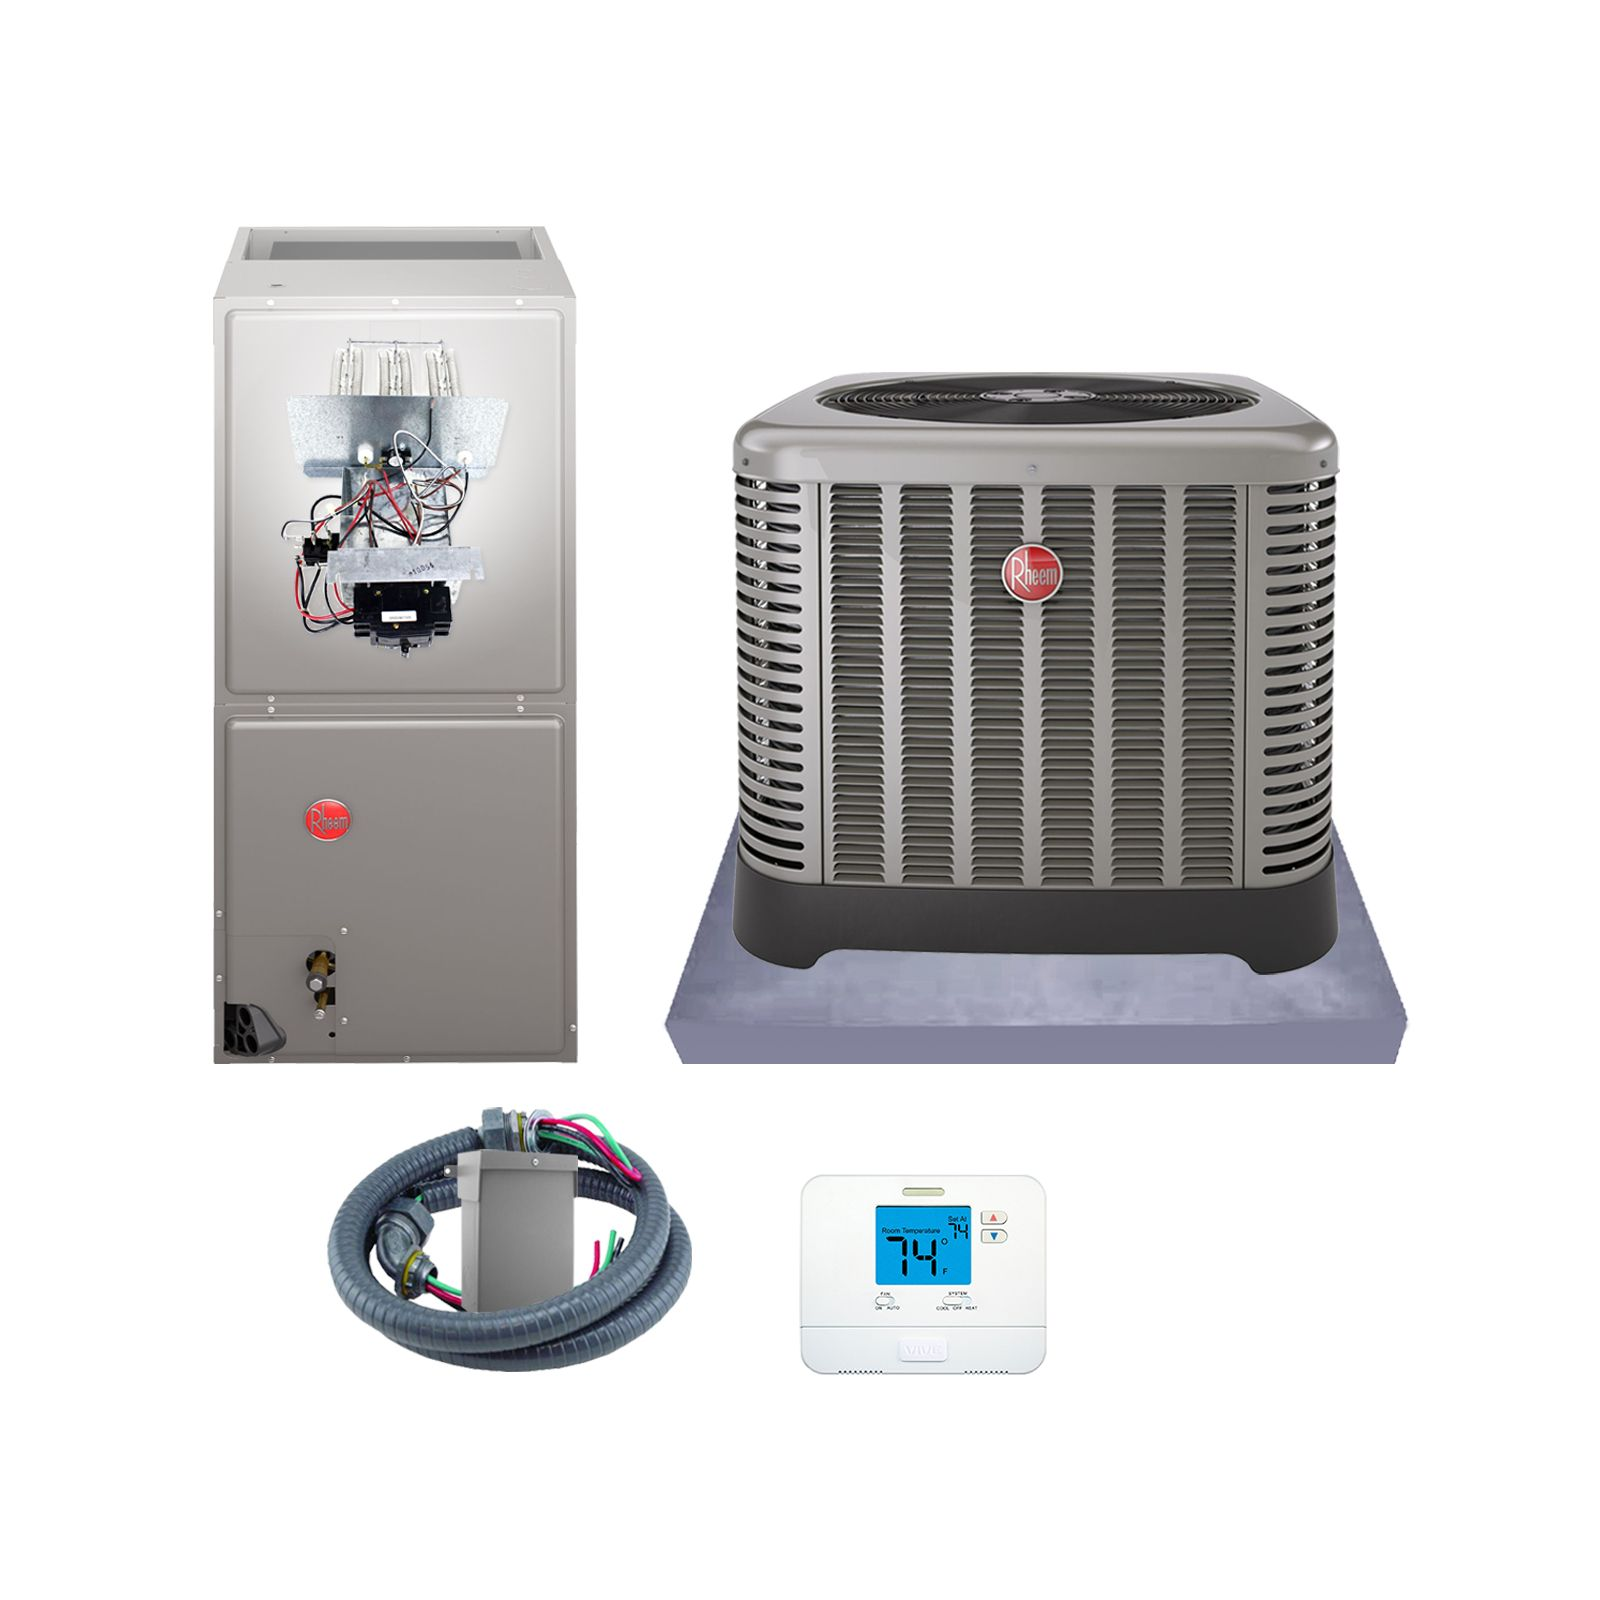 Rheem (AHRI 7940891) 2 Ton, 16 SEER/13 EER Classic Series, Air Conditioner Split System and Install Kit